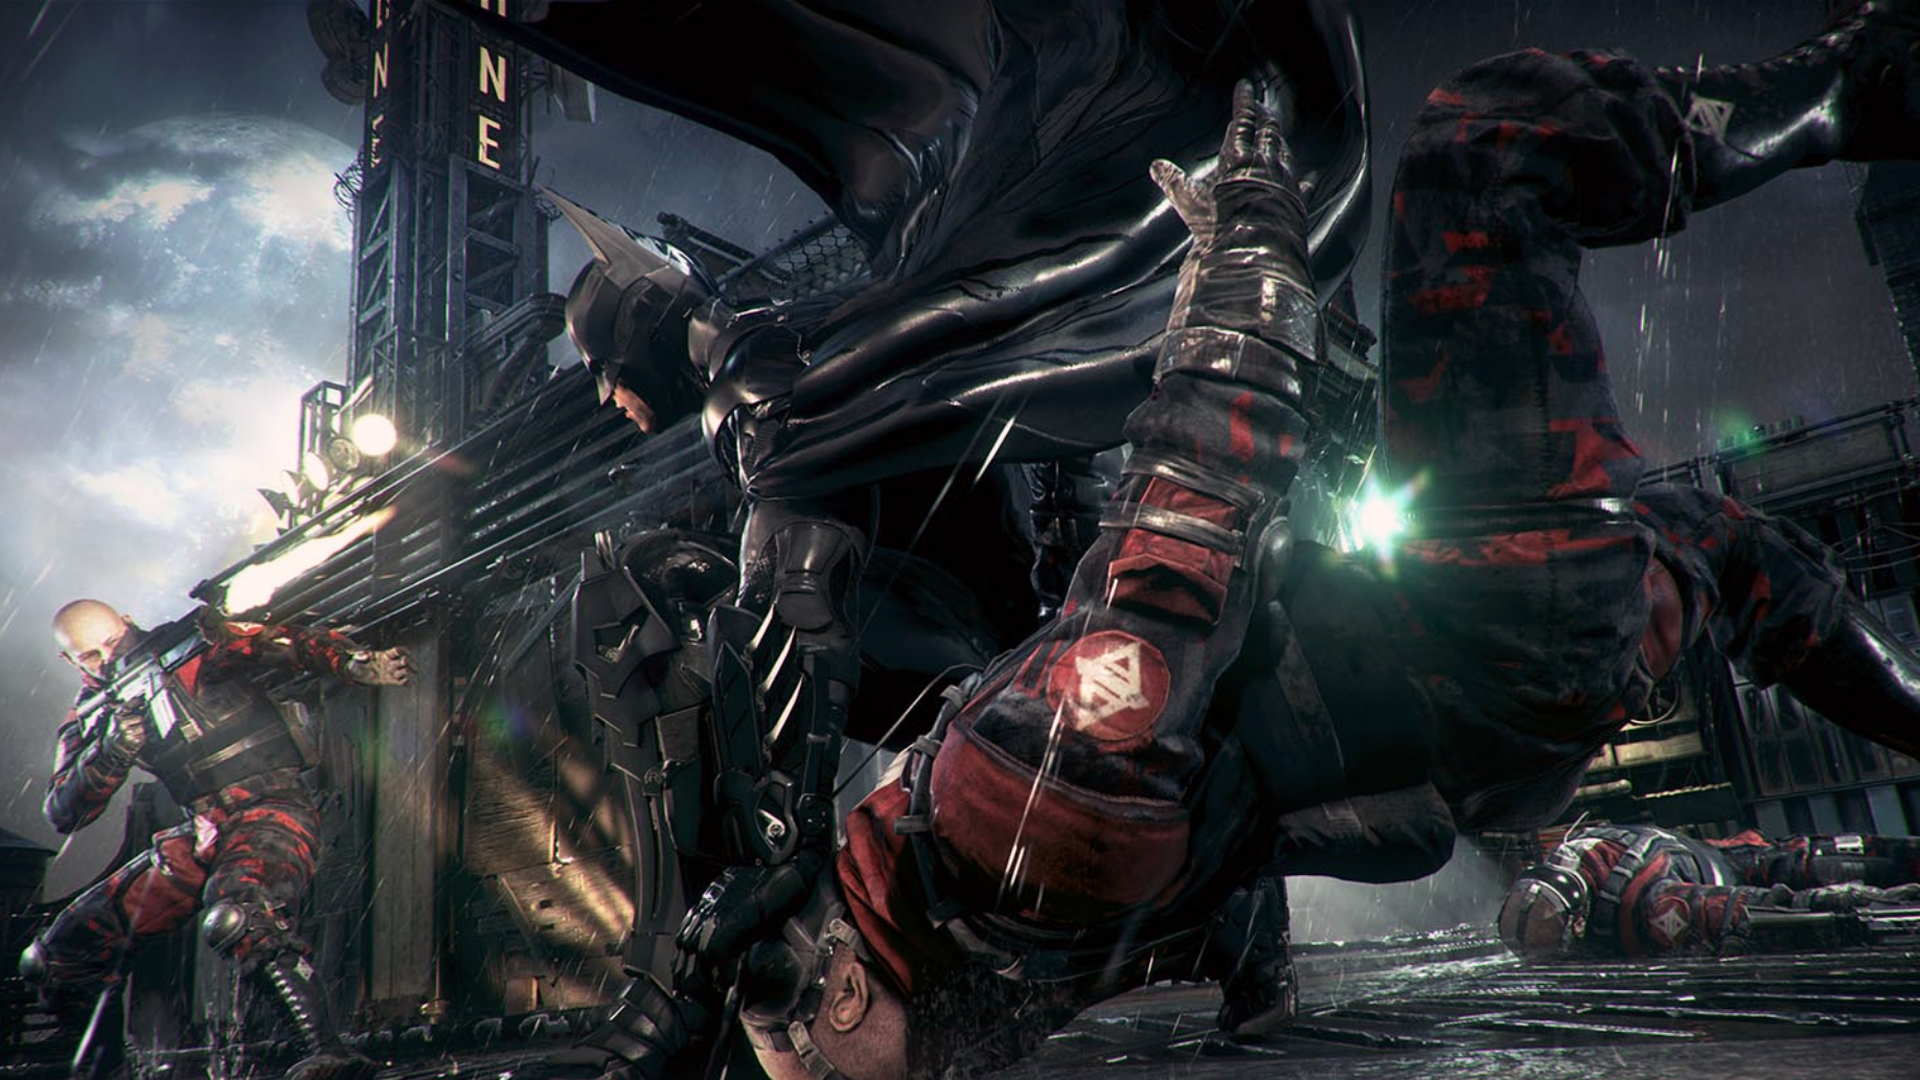 fighting batman arkham knight game hd 1920x1080 1080p wallpaper and 1920x1080